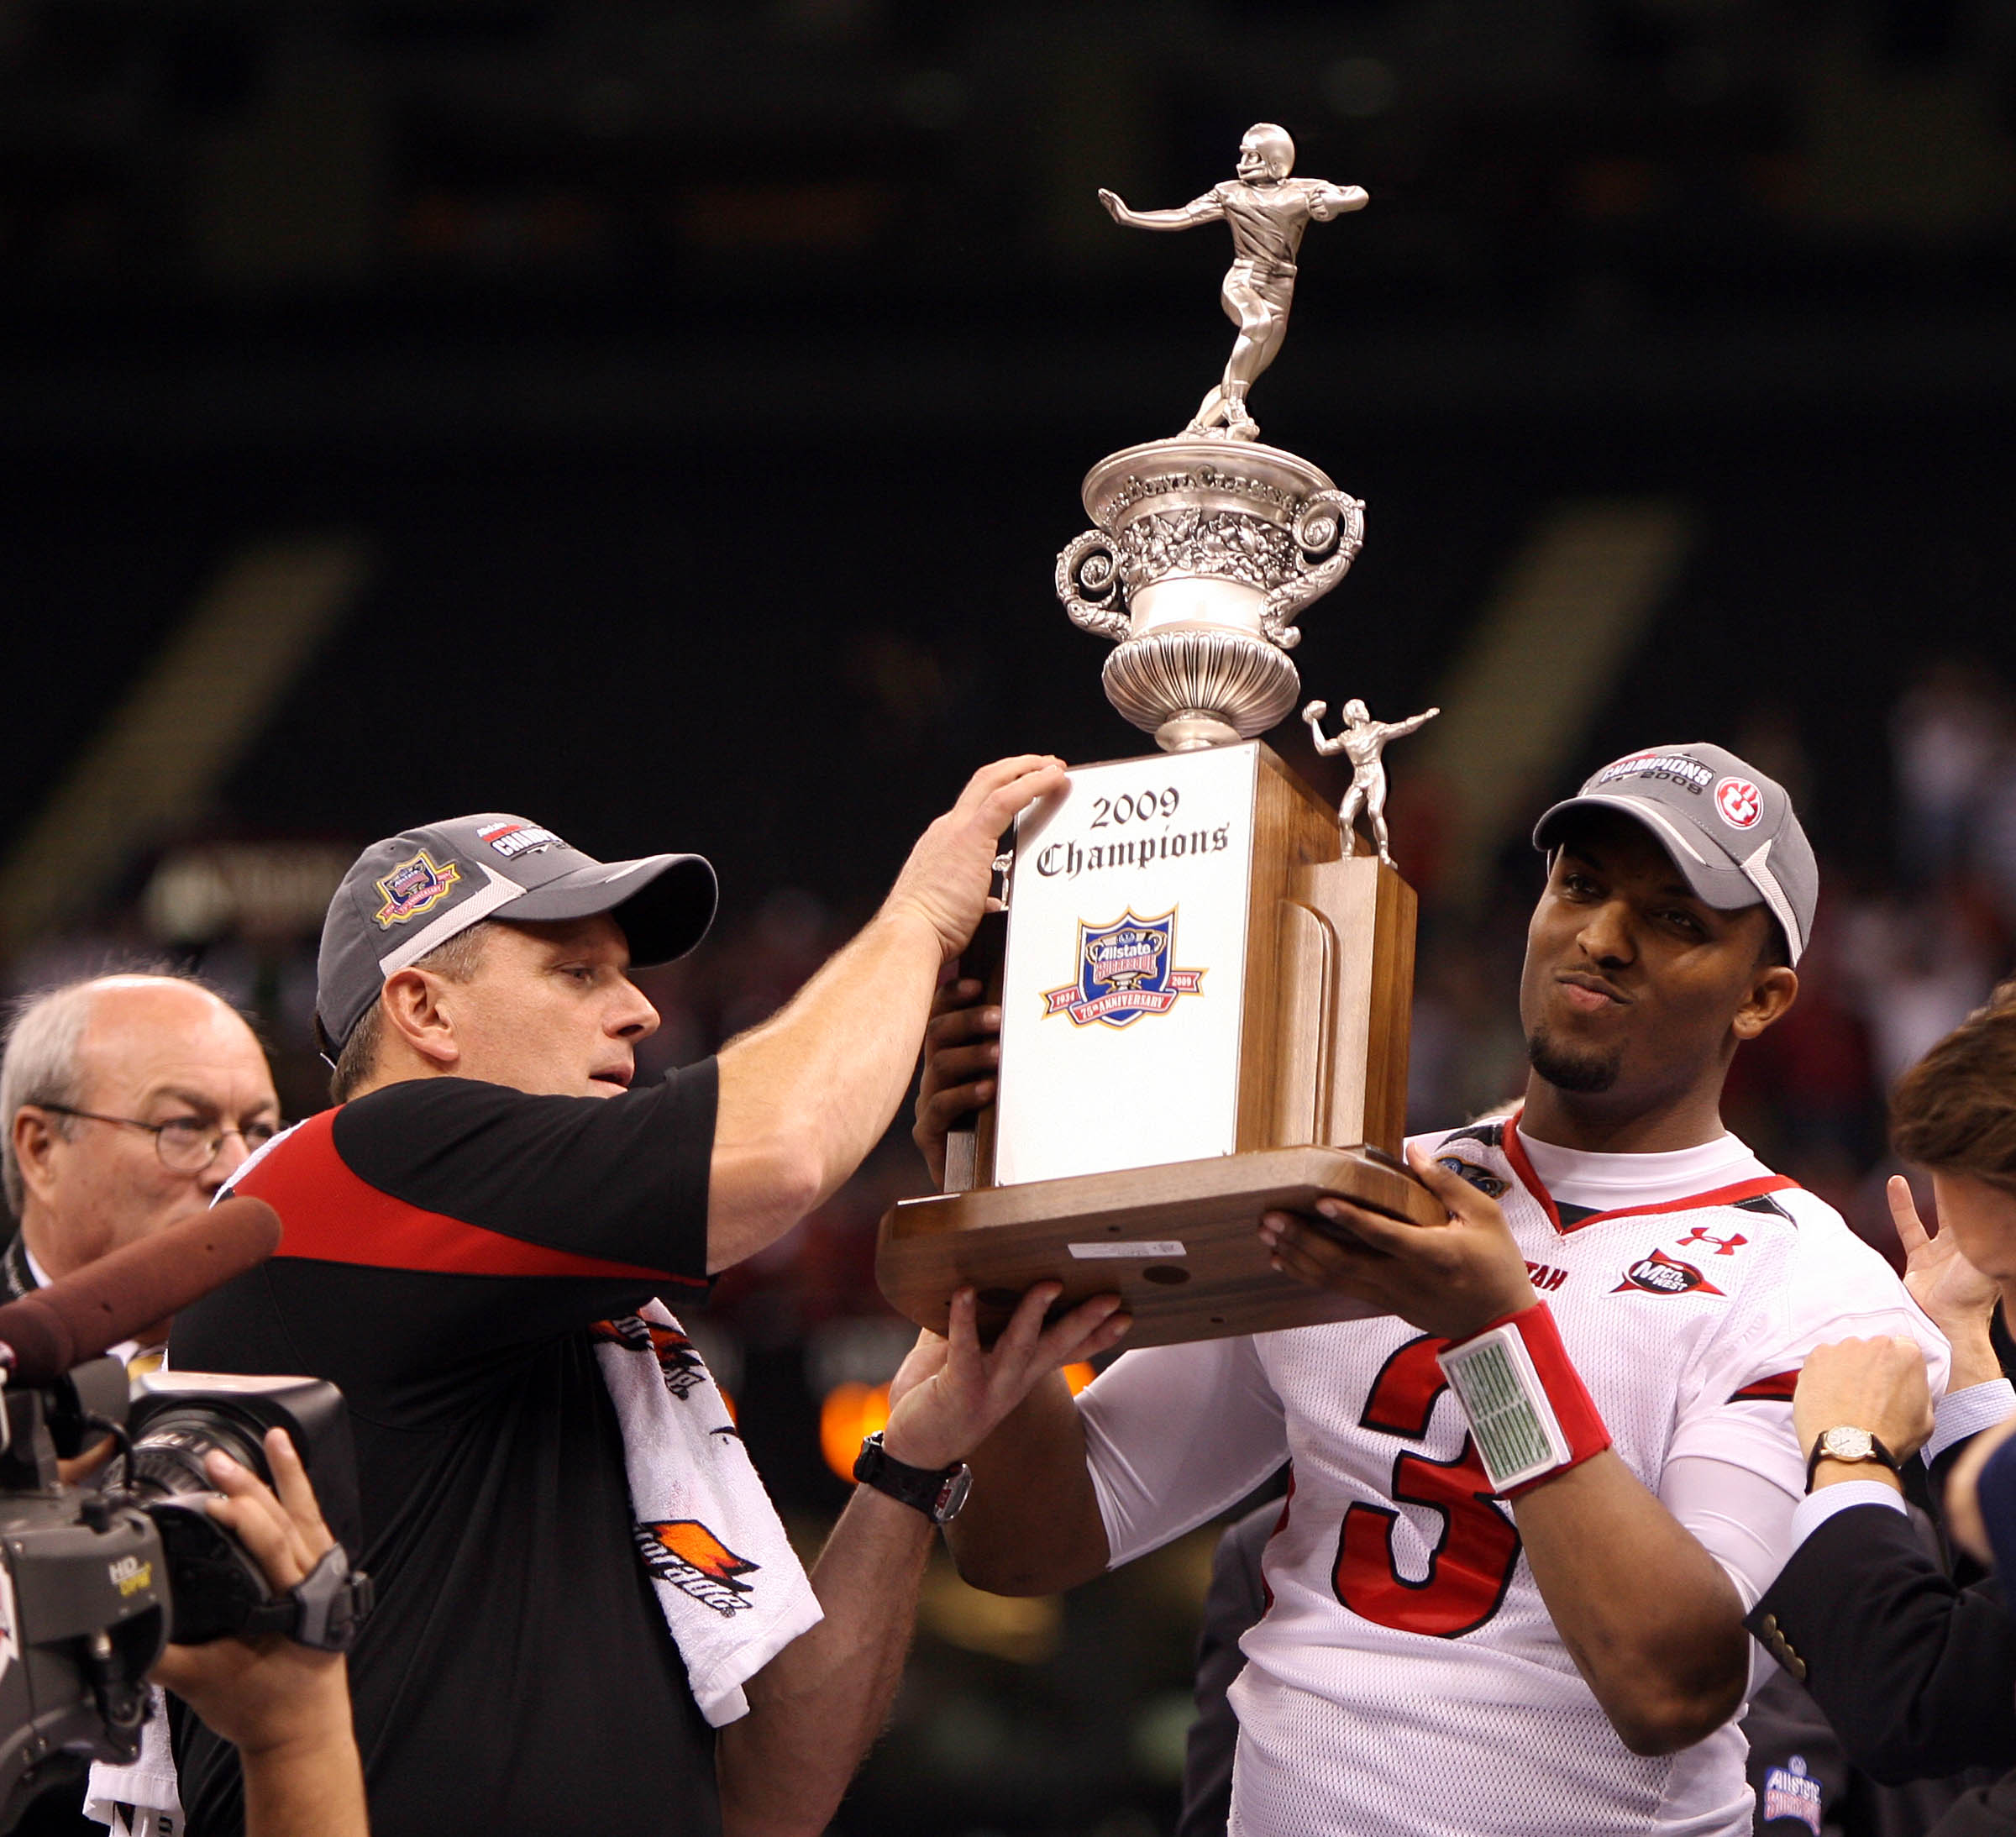 Utah head coach Kyle Whittingham holds the trophy with Utah quarterback Brian Johnson (3) after beating Alabama winning the 2009 Allstate Sugar Bowl, at the Superdome, in New Orleans, LA. Friday Jan. 2, 2009. Photo by Jeffrey D. Allred/Deseret News